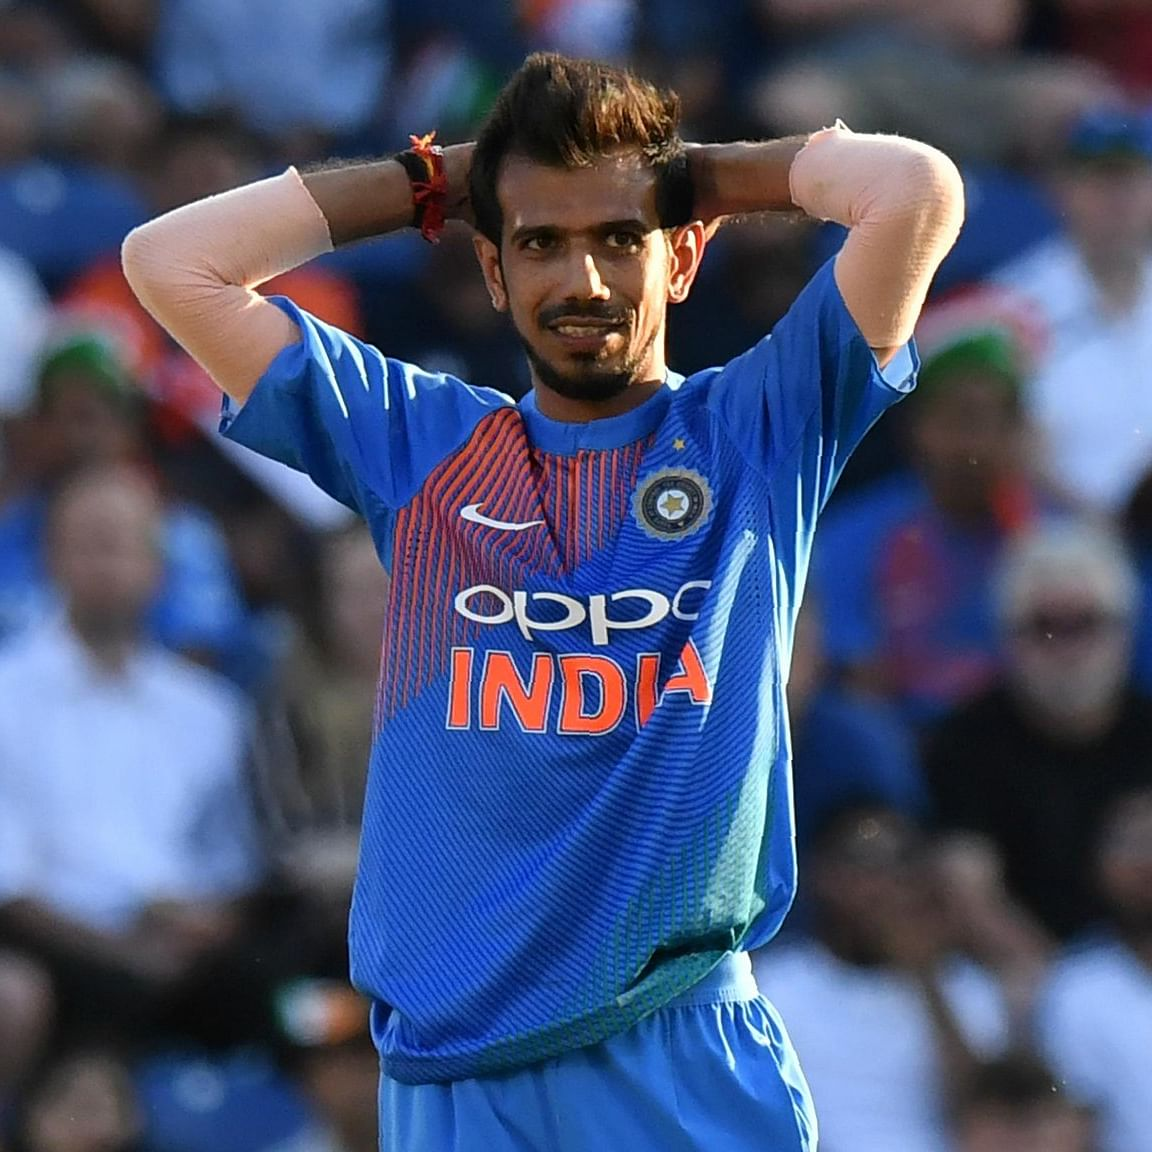 India vs Australia 1st ODI: Yuzvendra Chahal concedes most runs as an Indian spinner in ODIs